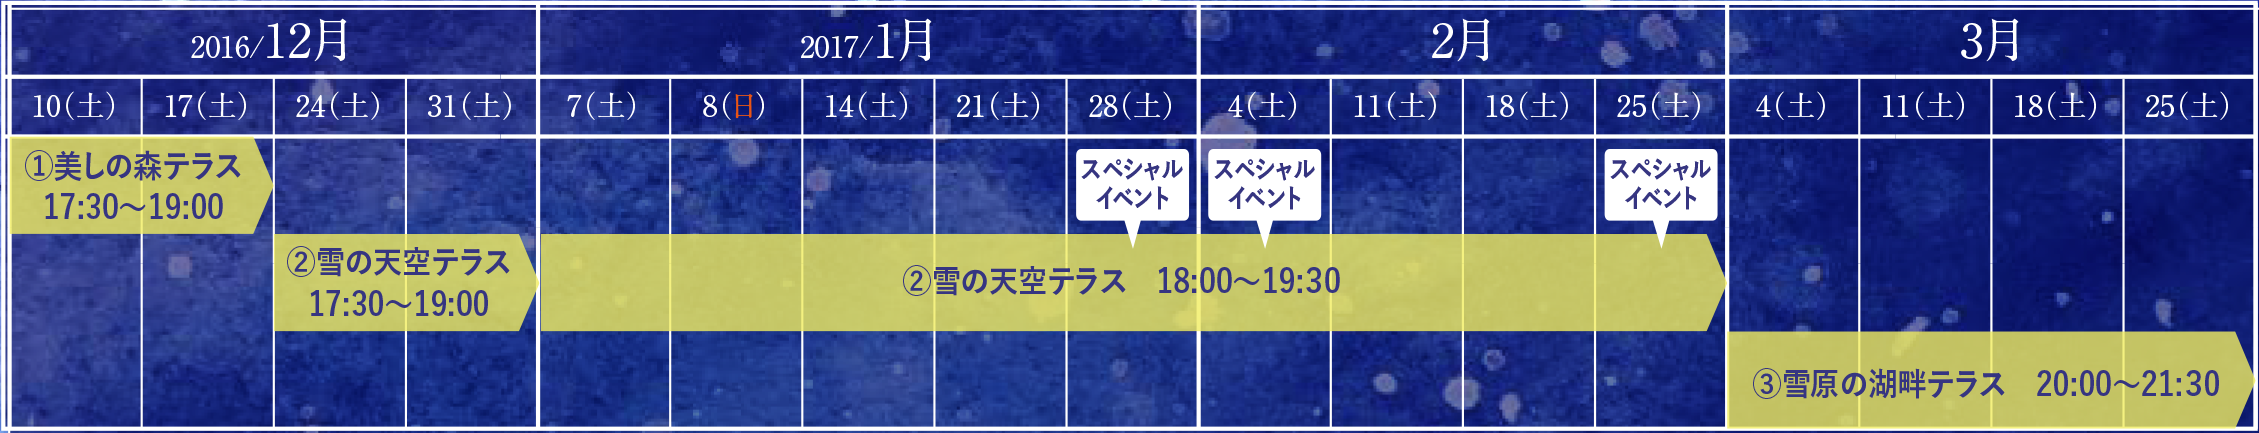 soy_schedule